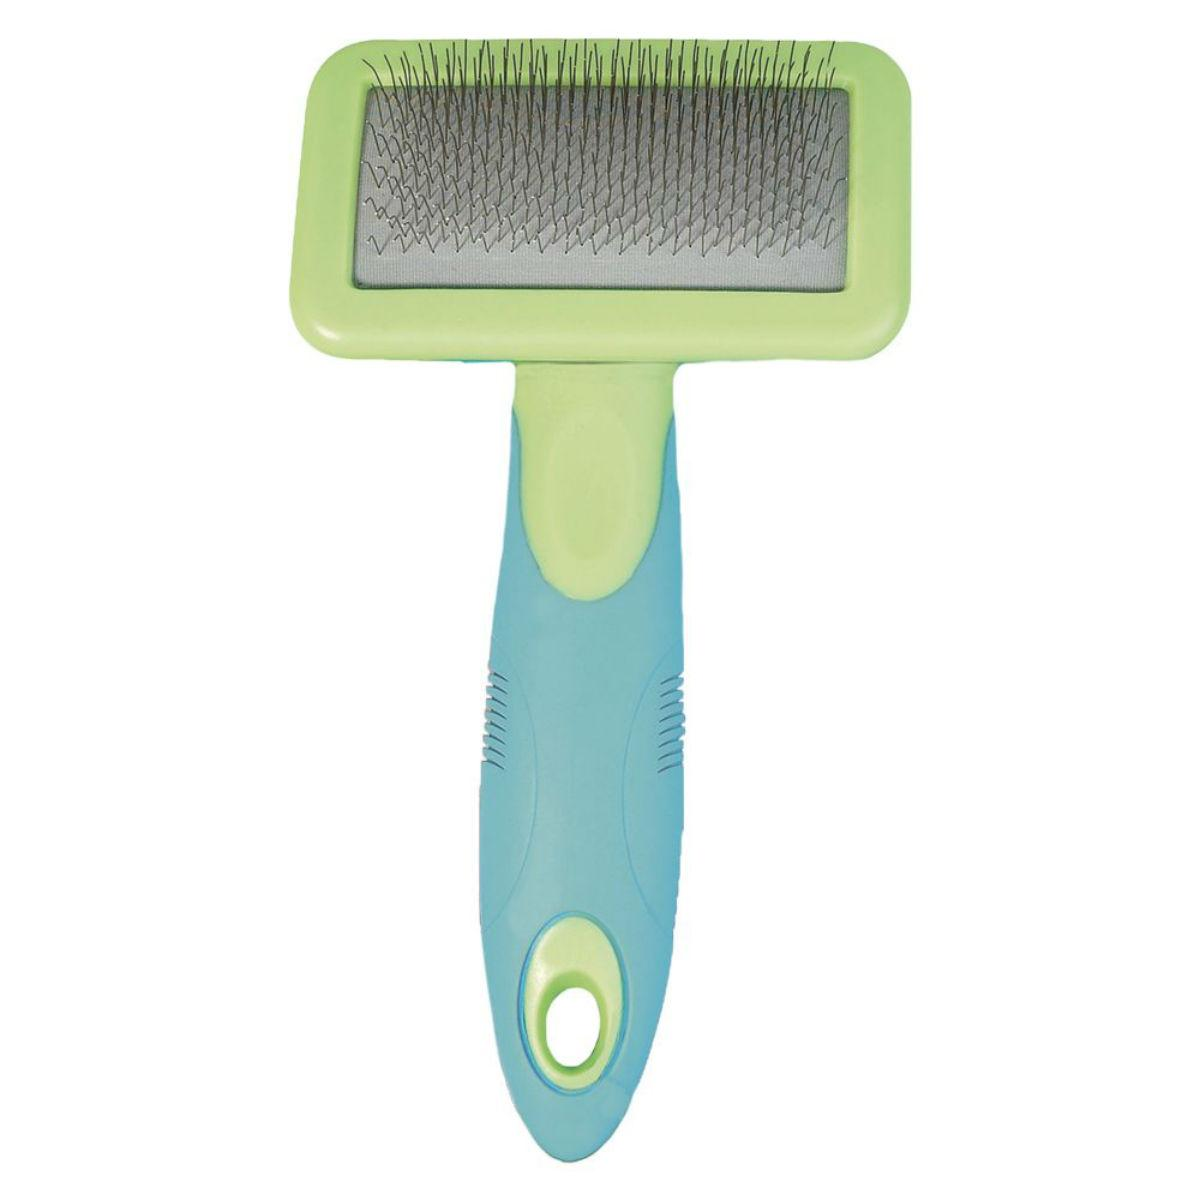 BaxterBoo – U-Groom Slicker Brush for Dogs and Cats